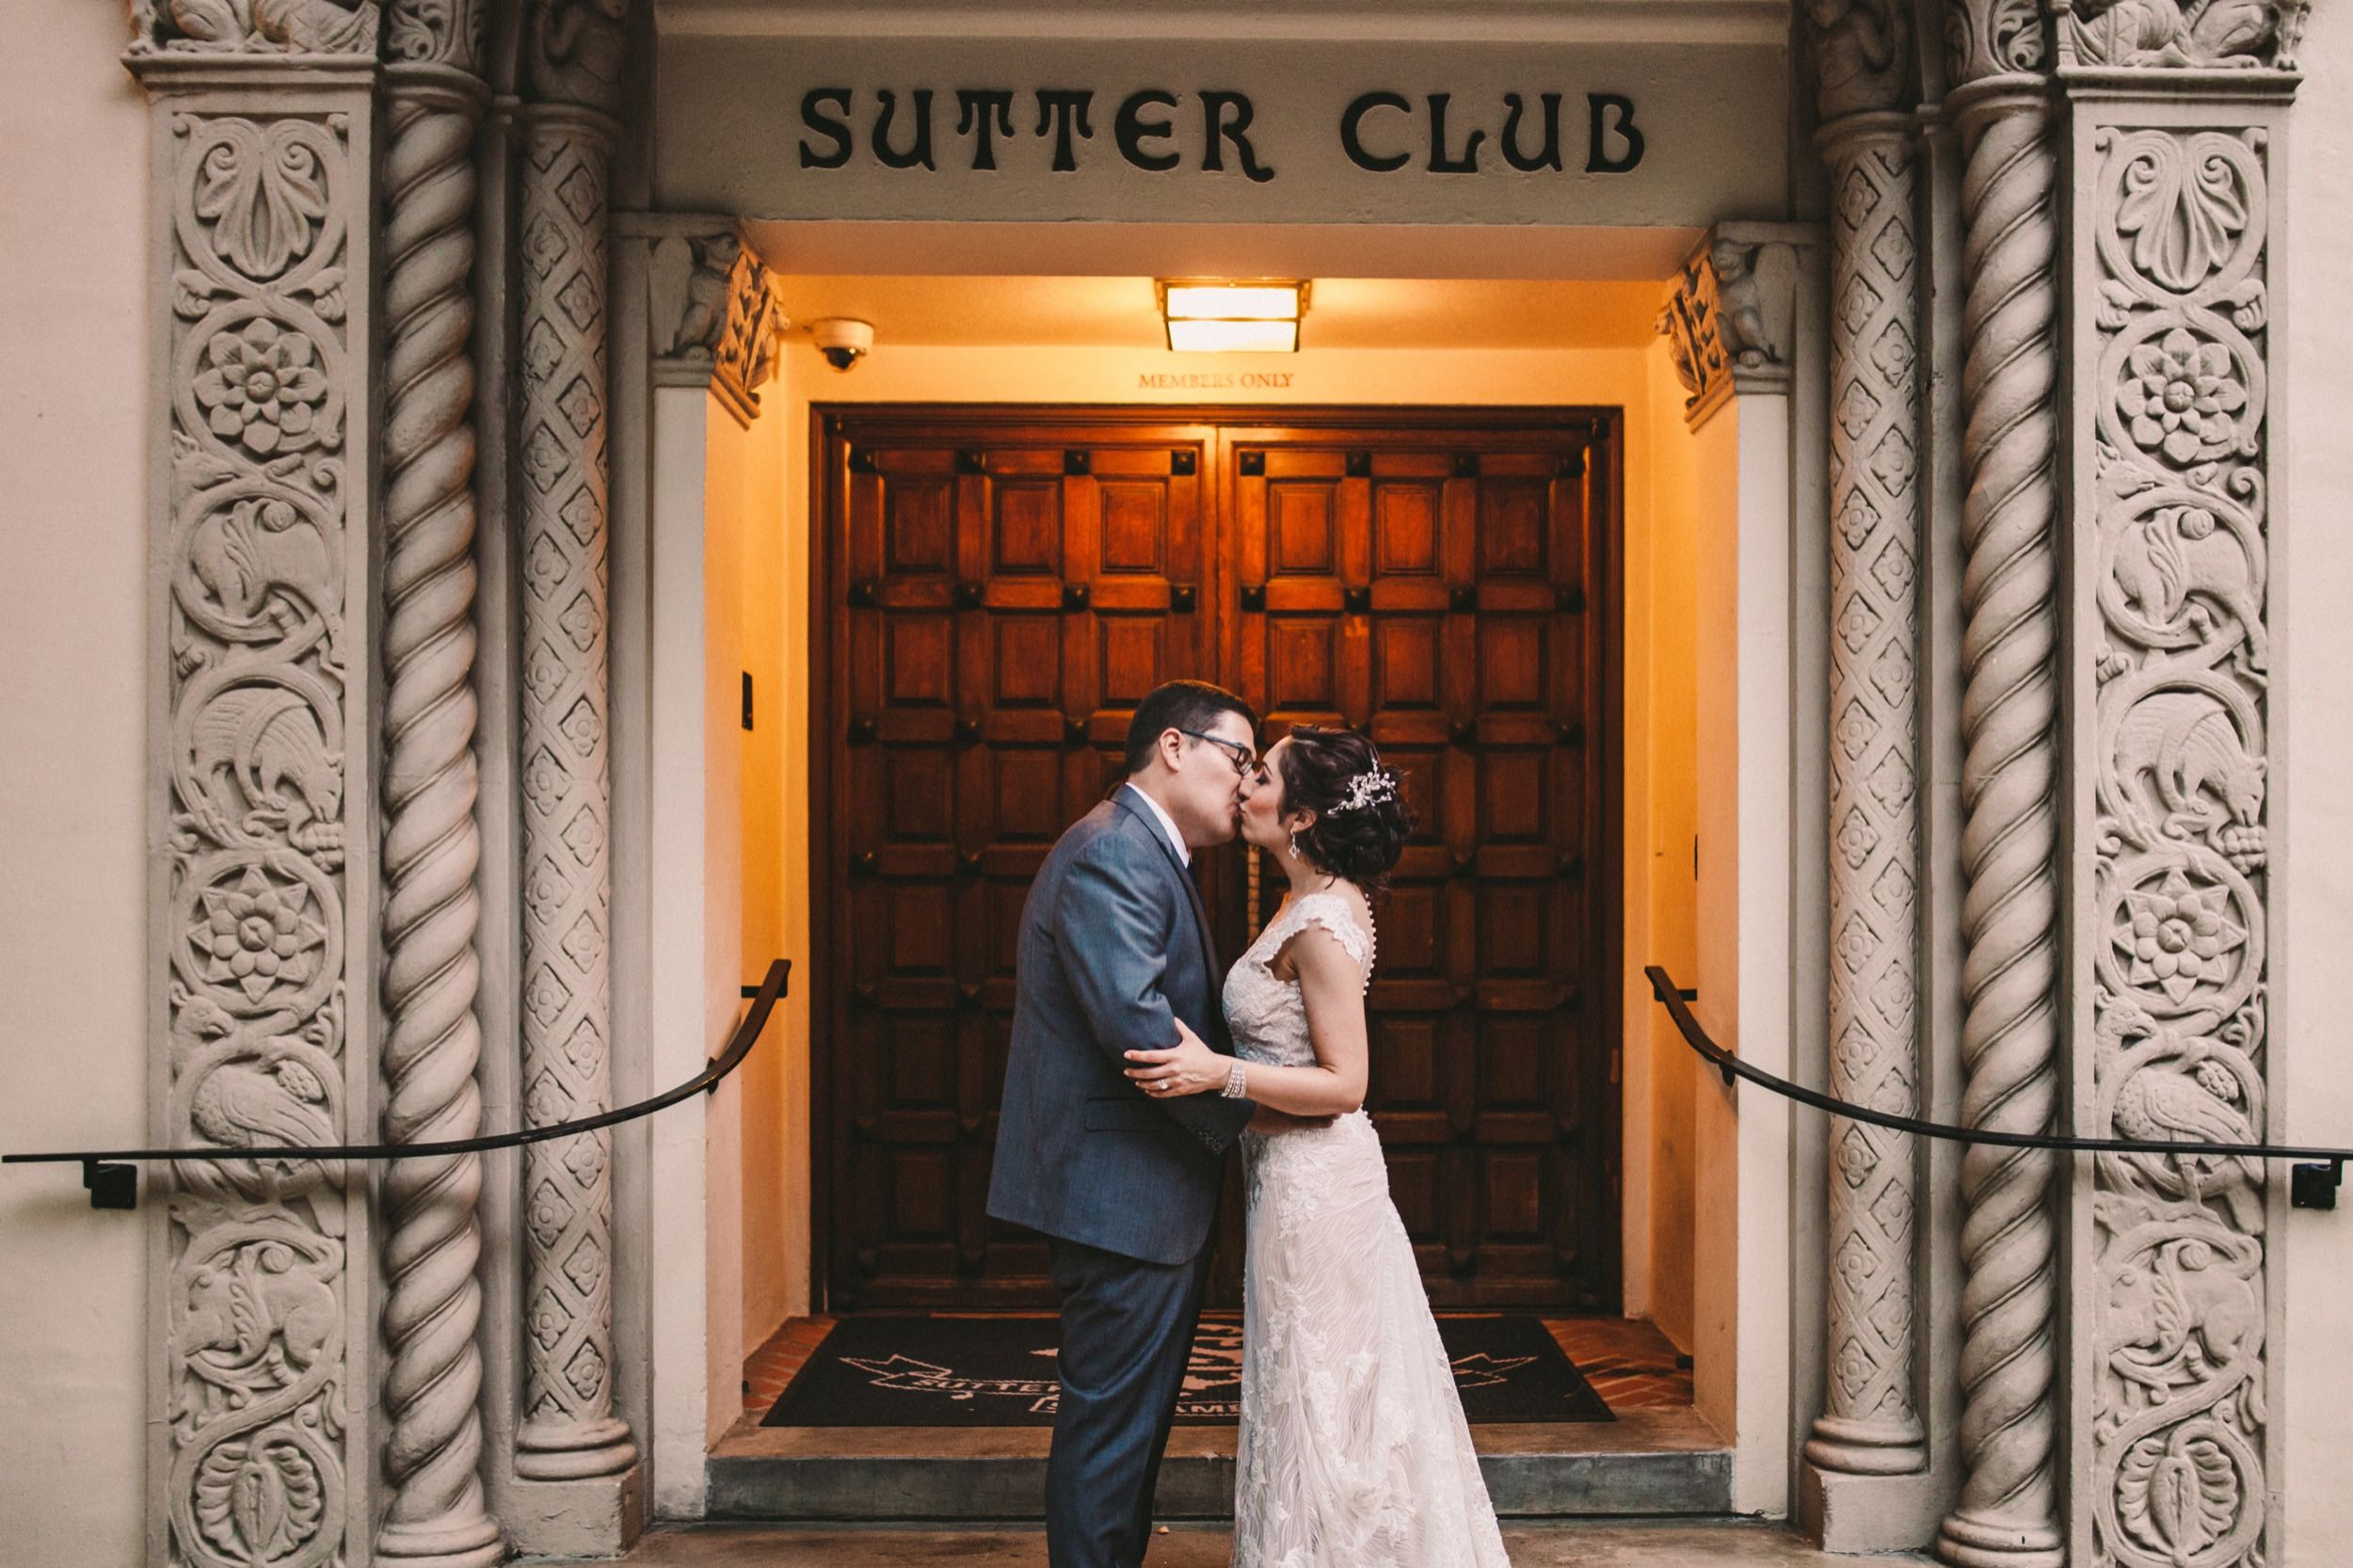 Sacramento Sutter Club & Capitol Building Wedding Photography-620.jpg